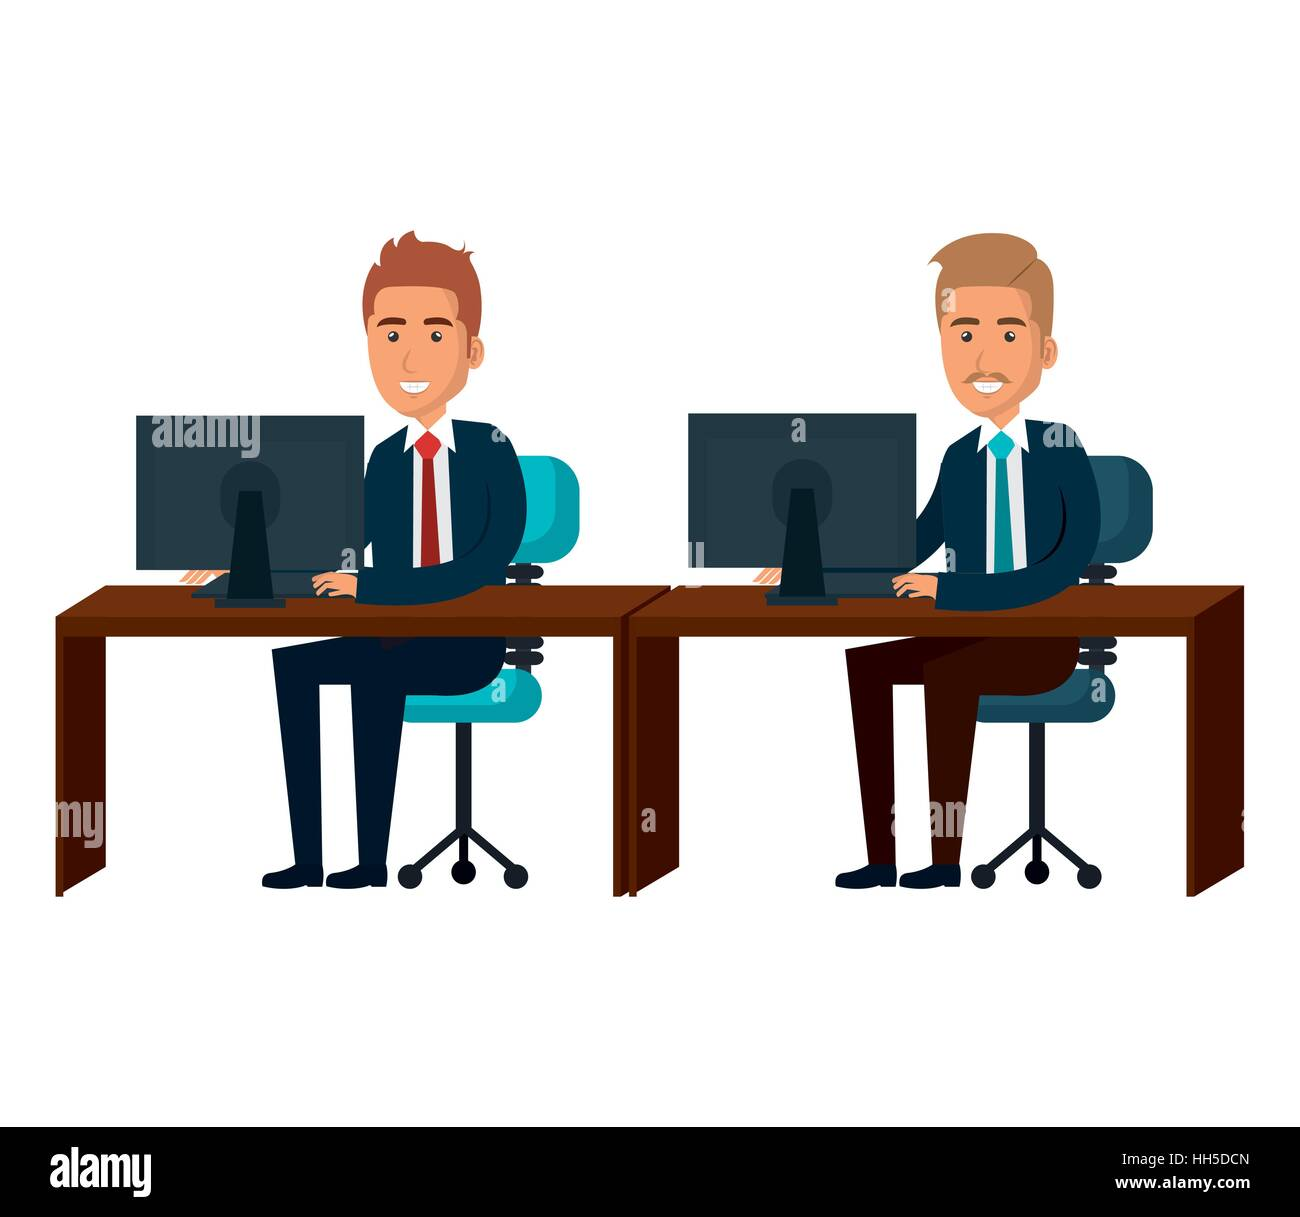 bussiness people working icon vector illustration design - Stock Vector